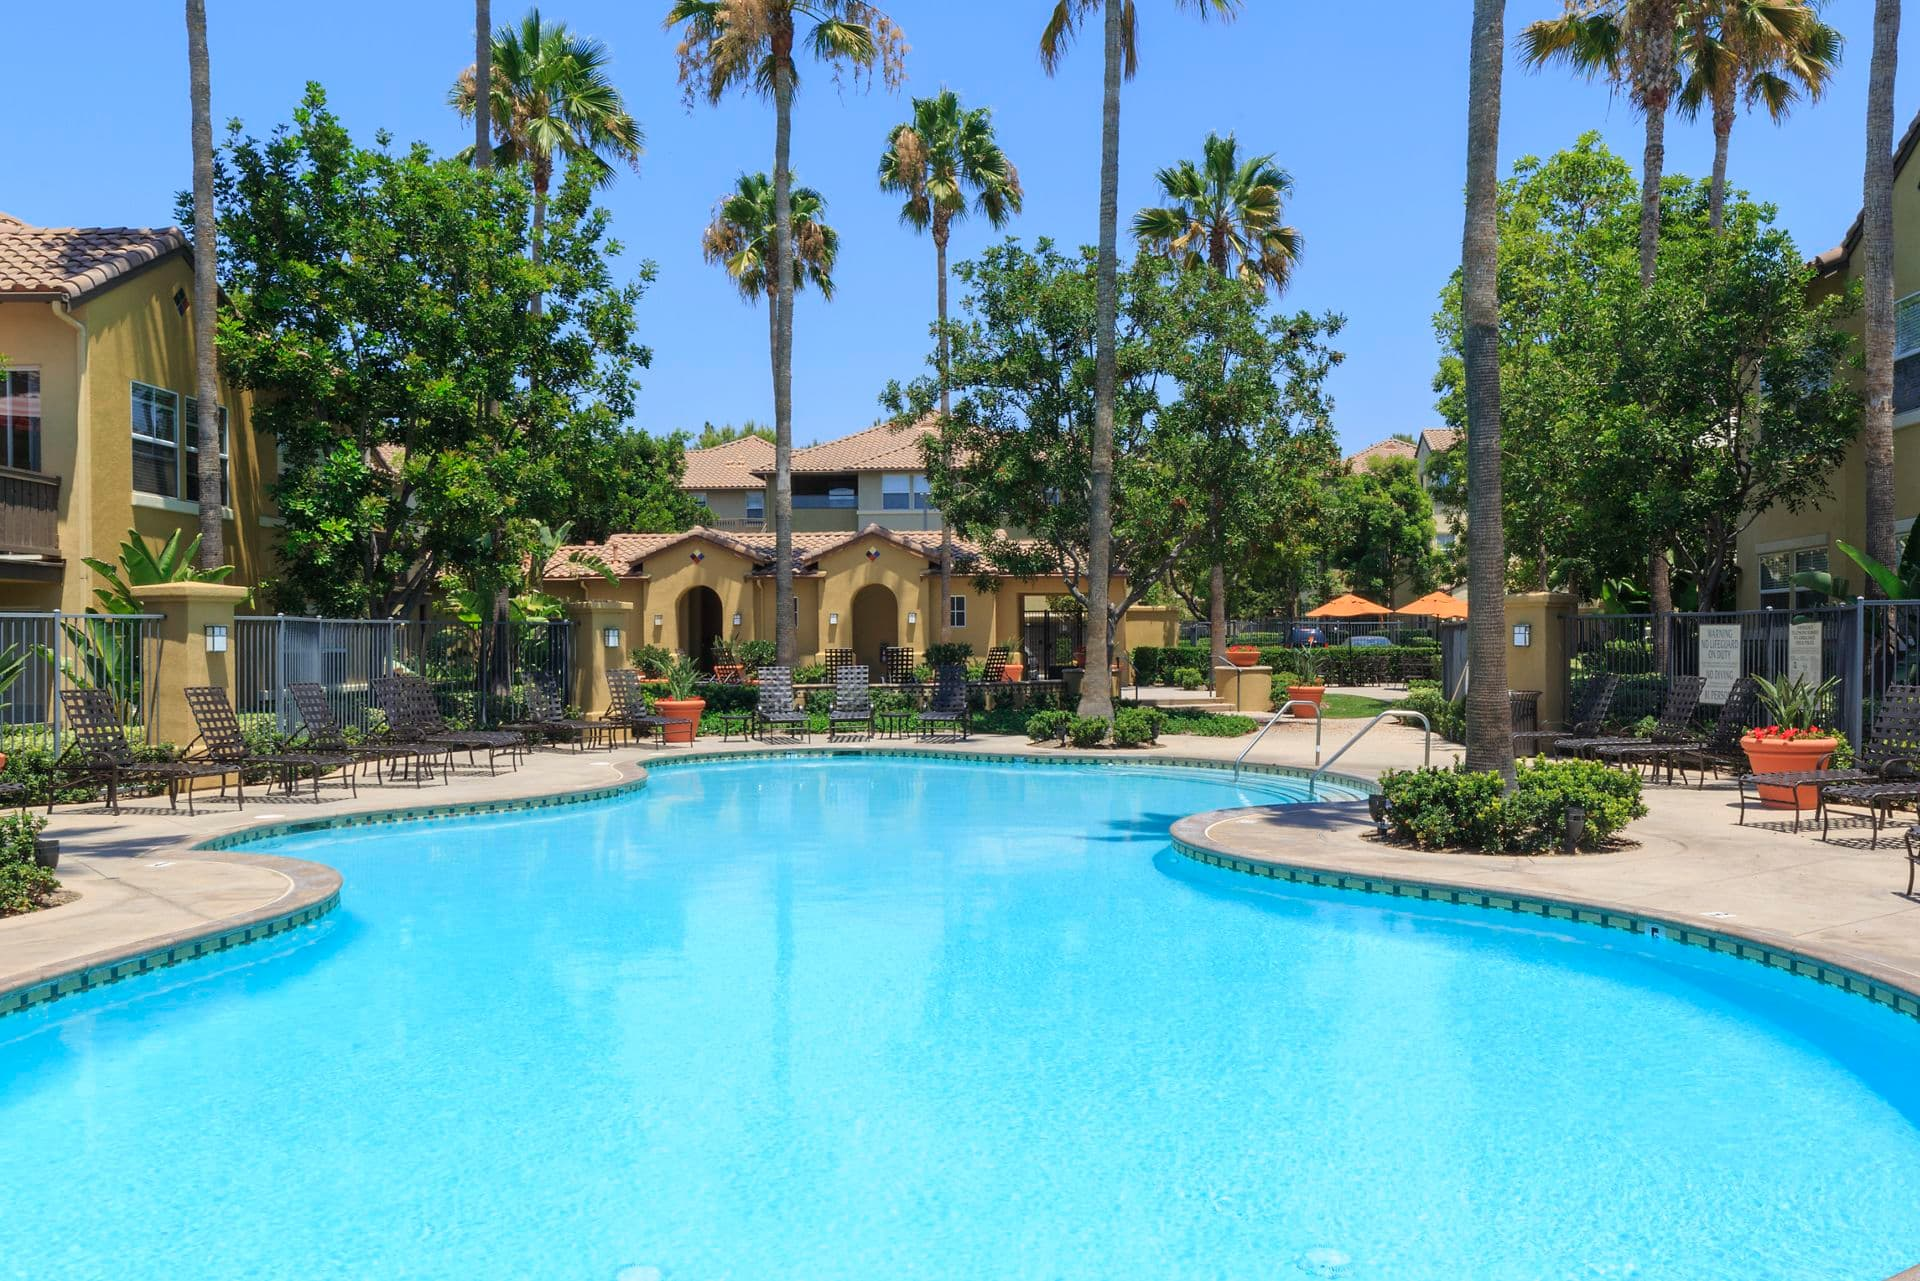 Pool view at Solana Apartment Homes in Irvine, CA.